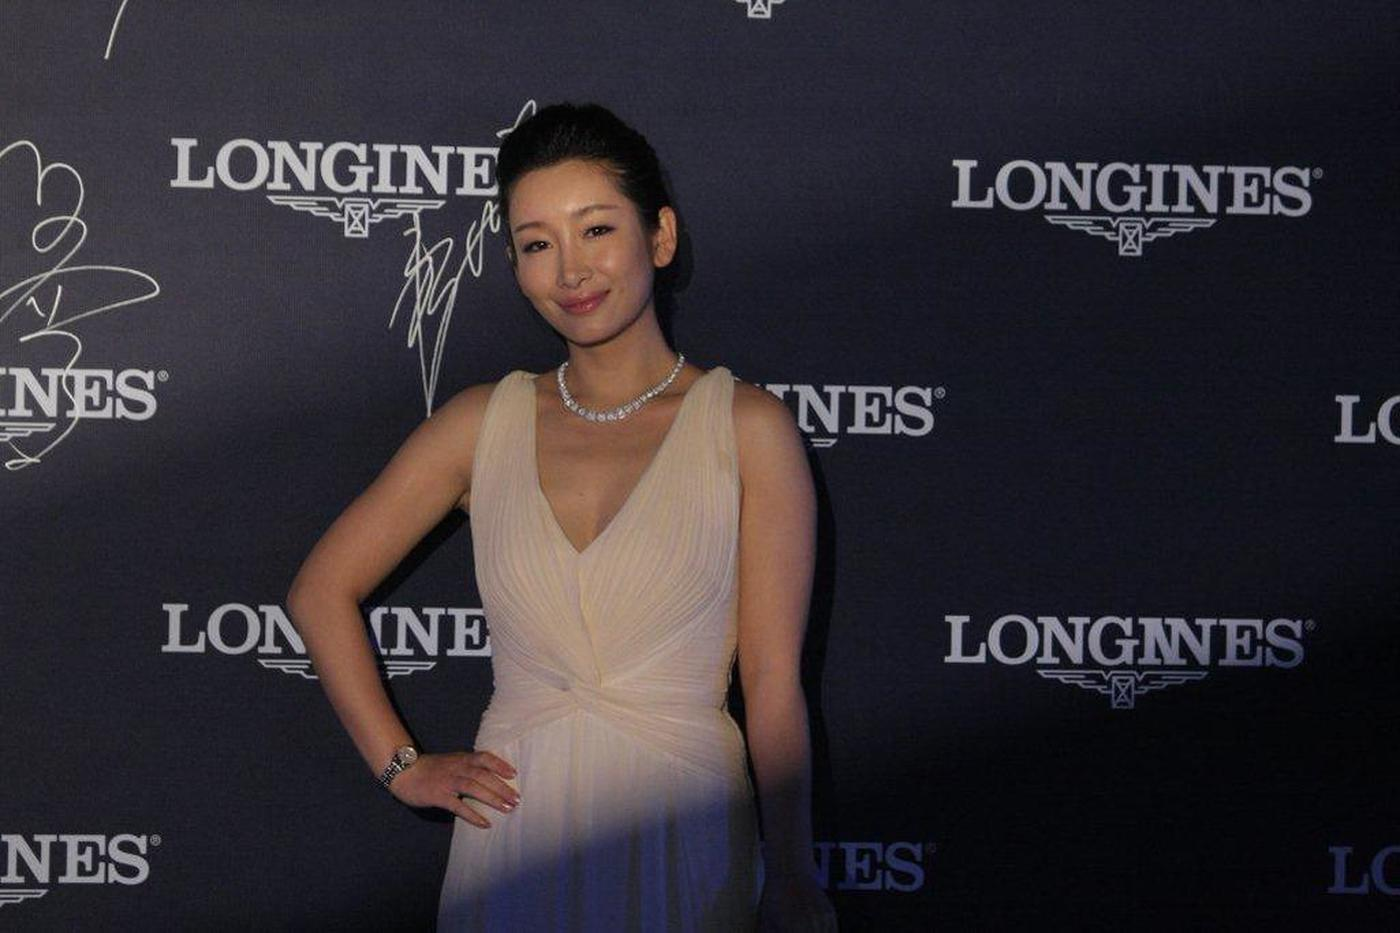 Longines Corporate Event: Kate Winslet reveals the new Longines Saint-Imier Collection in Shanghai 3